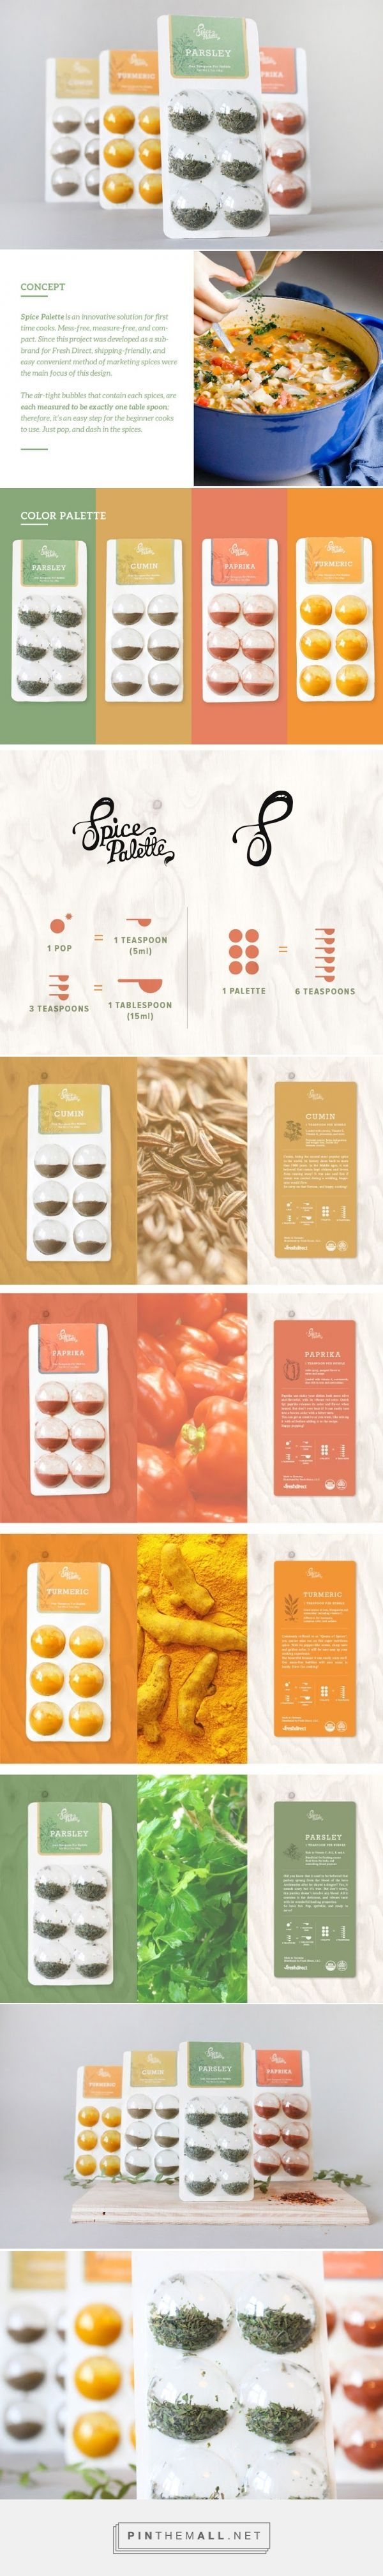 Mess free Spice packaging? Student #concept designed by Risa Takeuchi (USA)